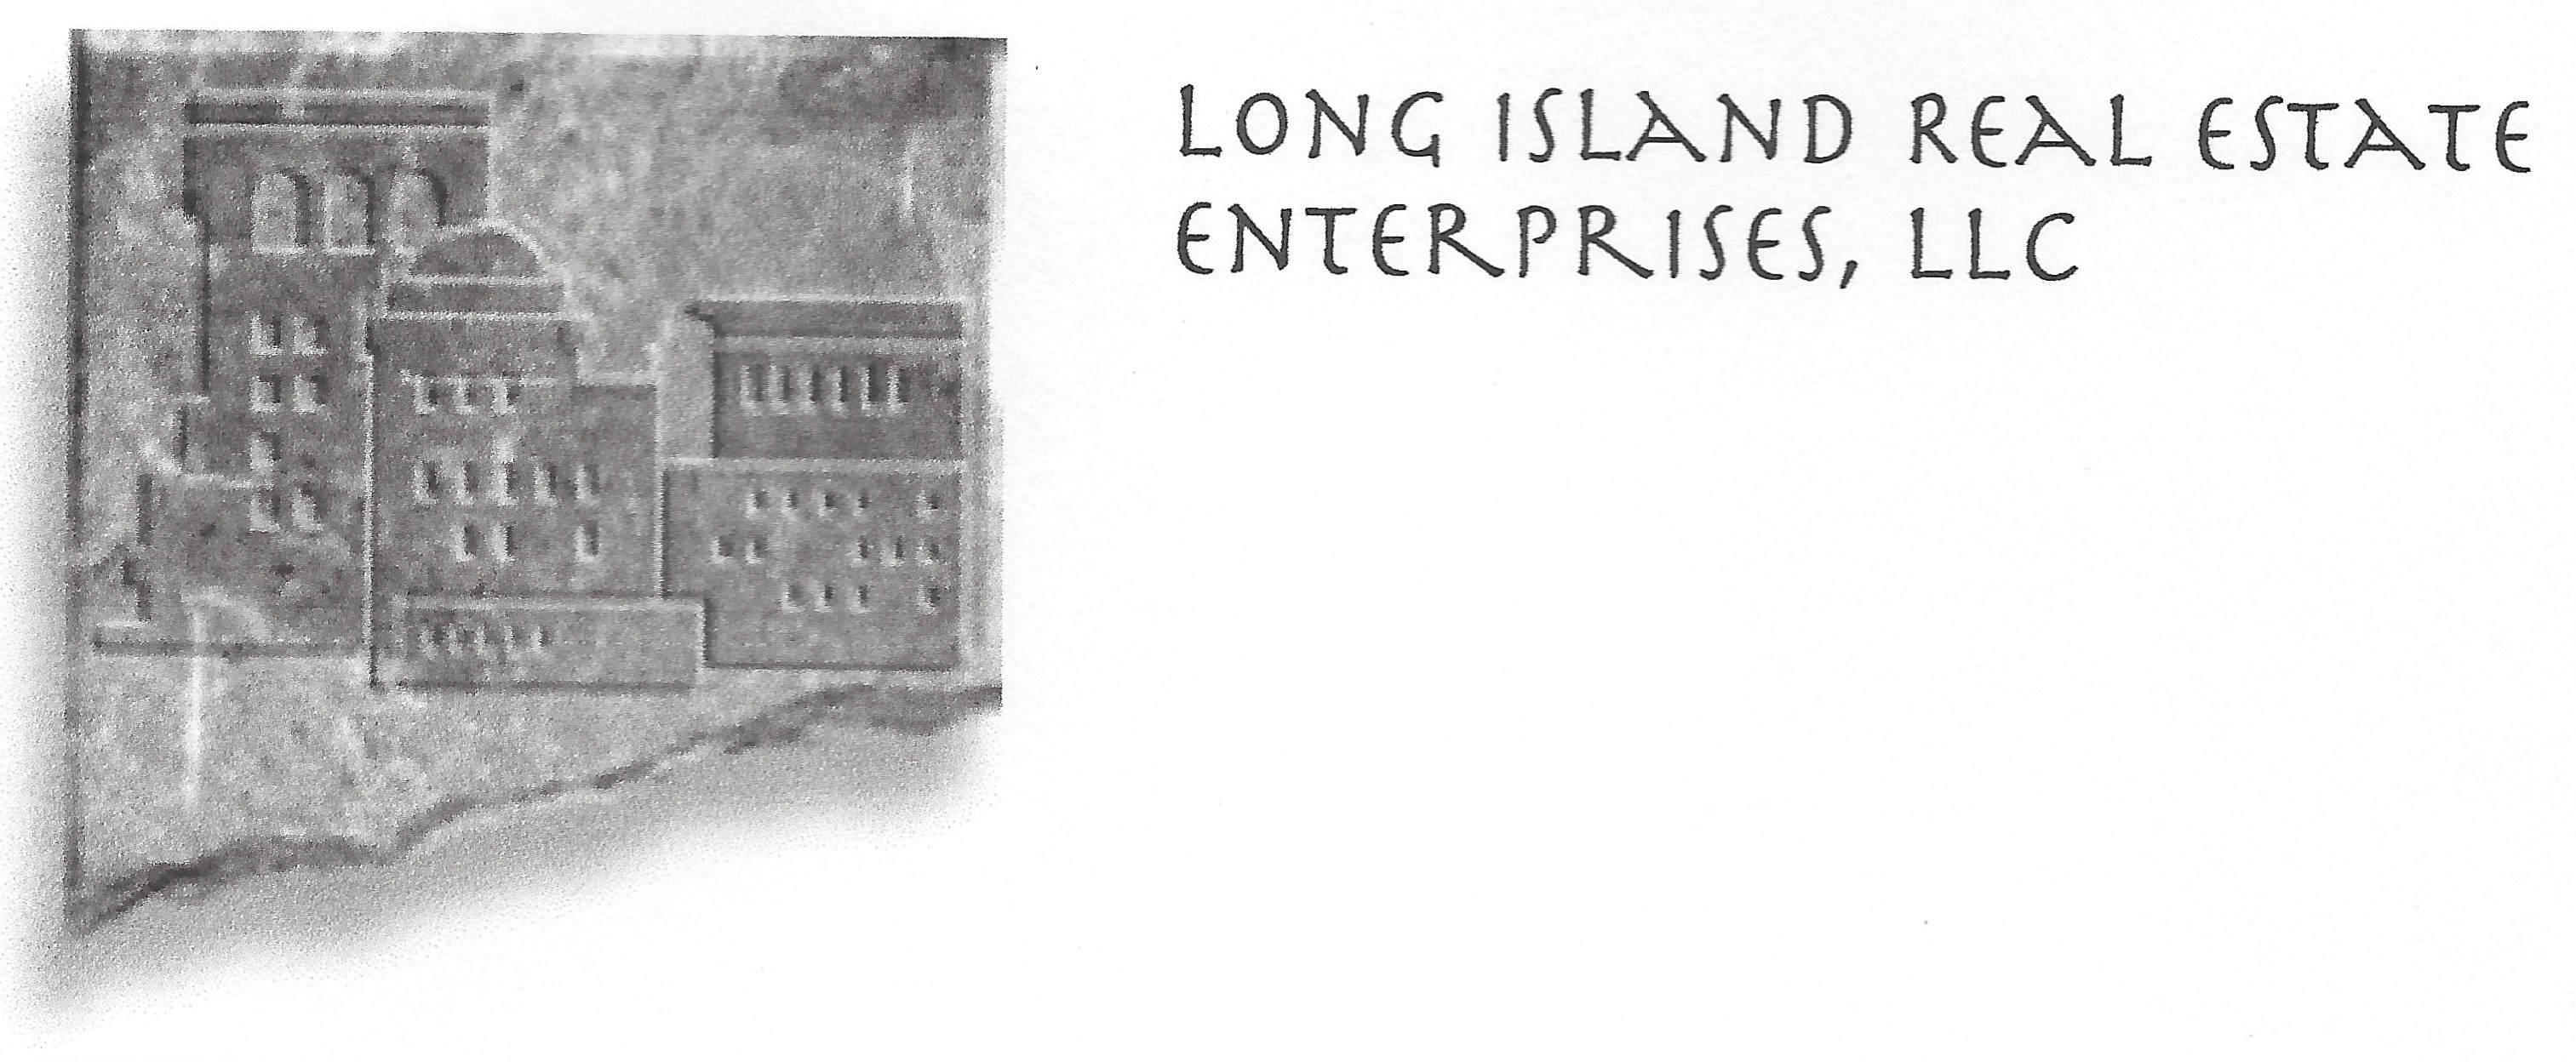 Long Island Real Estate Enterprises, LLC